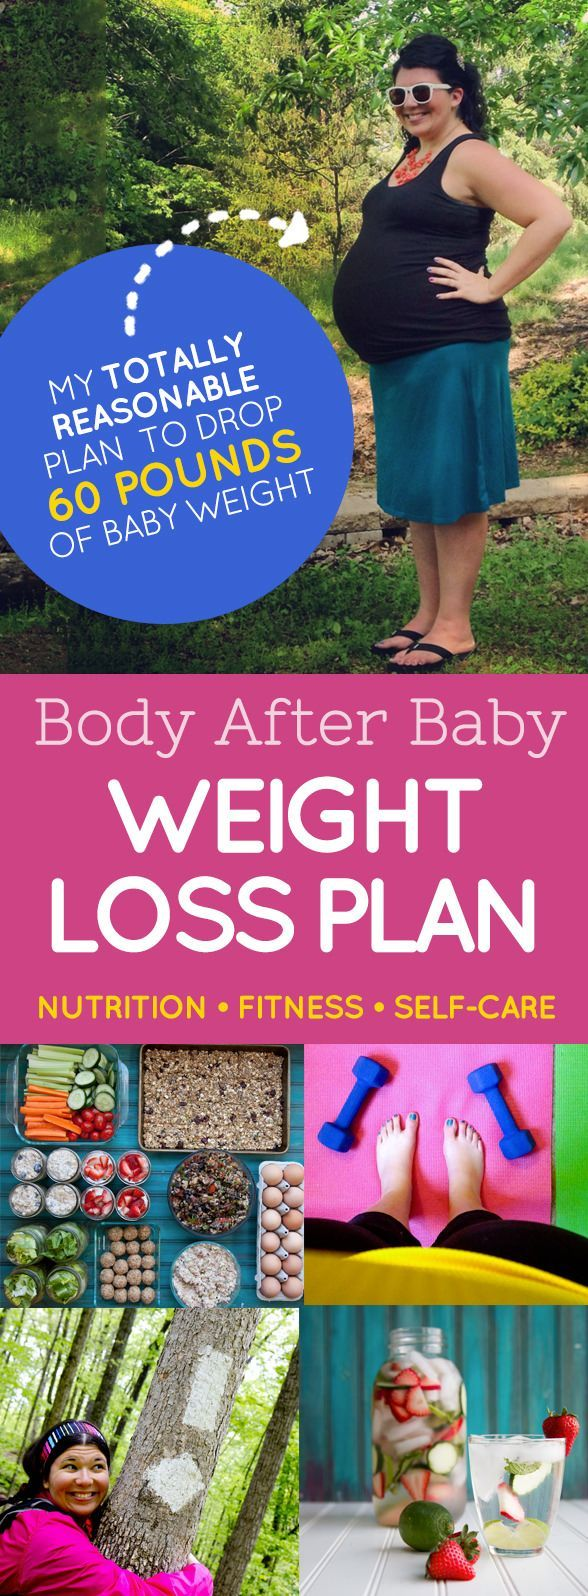 free meal plans for weight loss